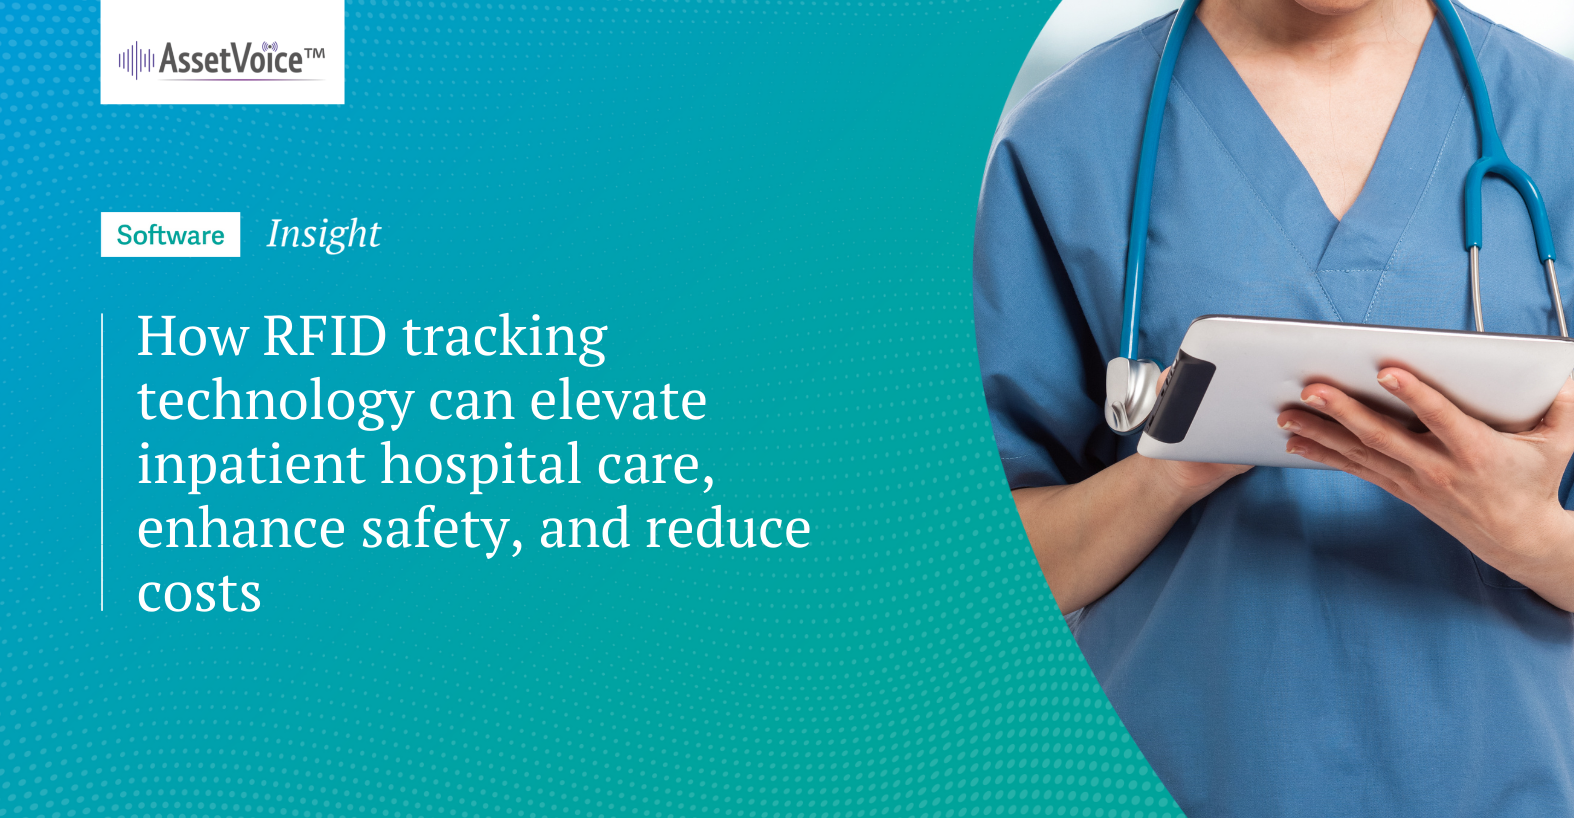 How RFID tracking technology can elevate inpatienthospitalcare, enhancesafety,and reduce costs